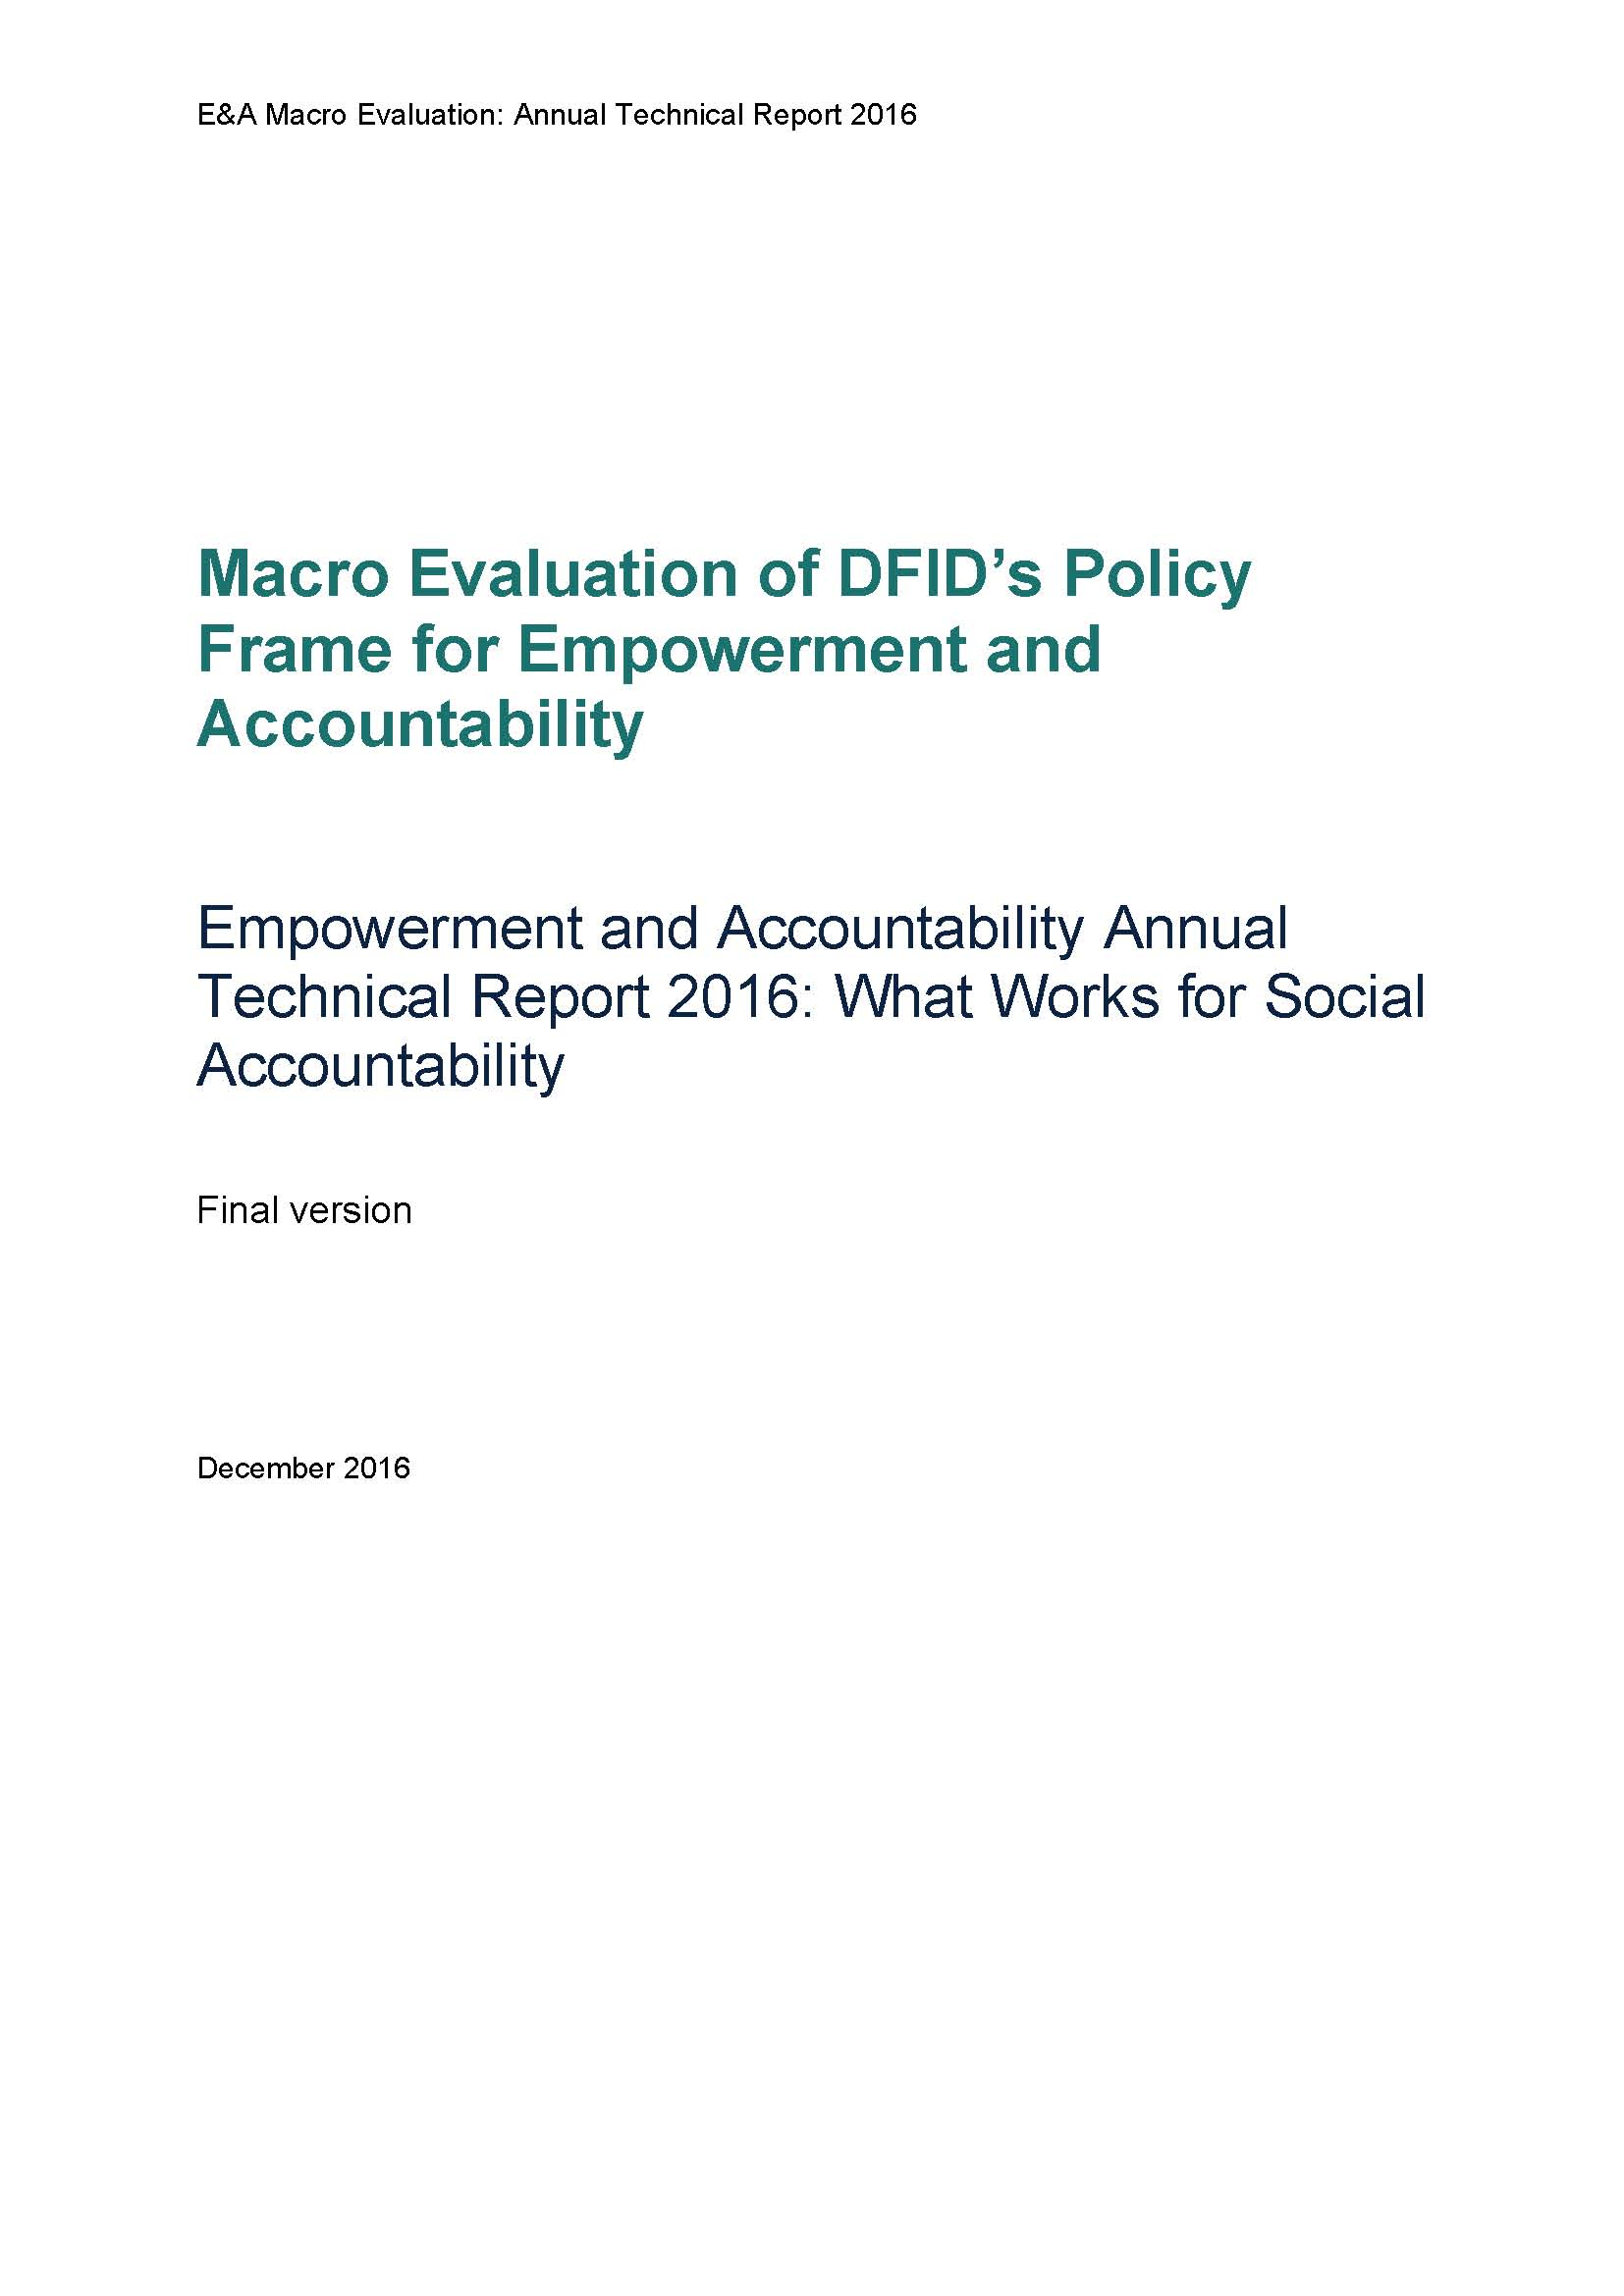 Empowerment and Accountability Annual Technical Report 2016